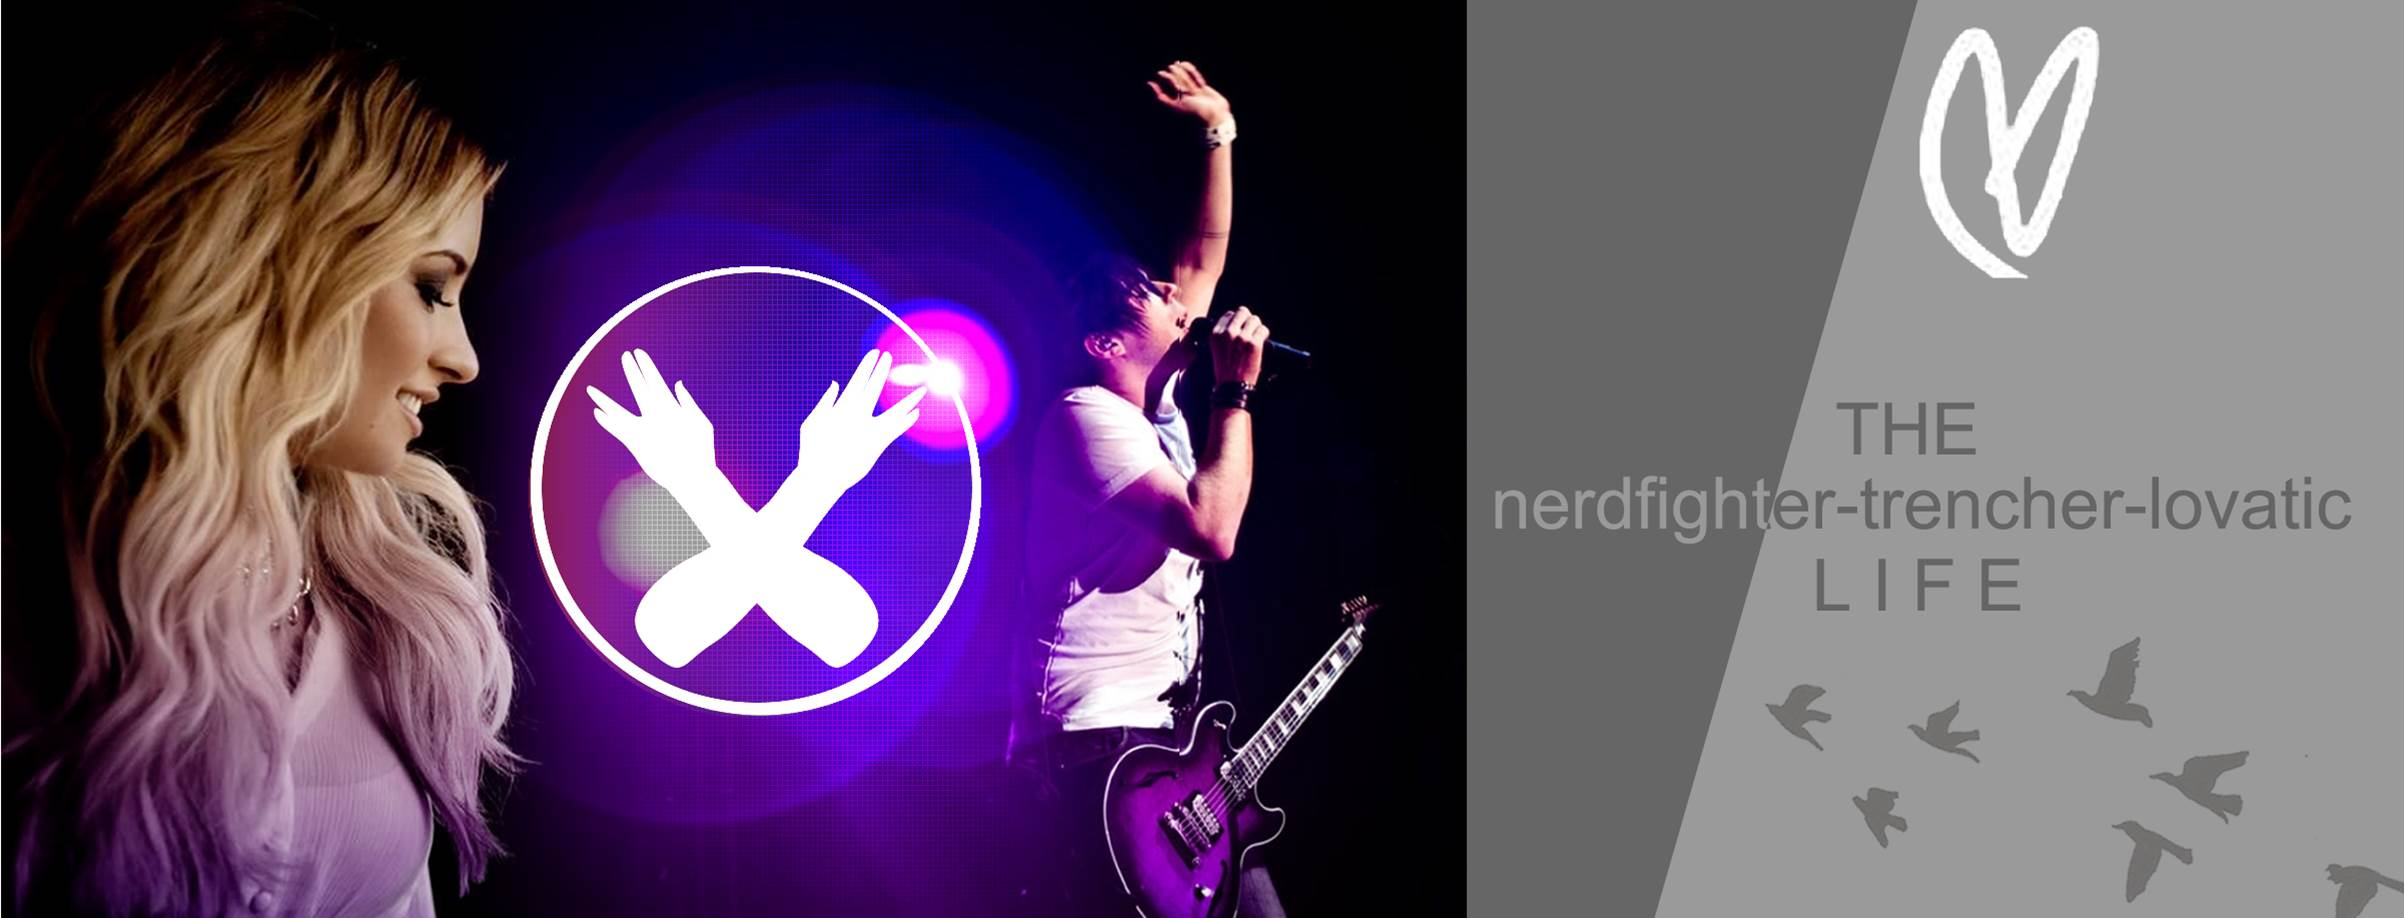 the-nerdfighter-trencher-lovatic-life